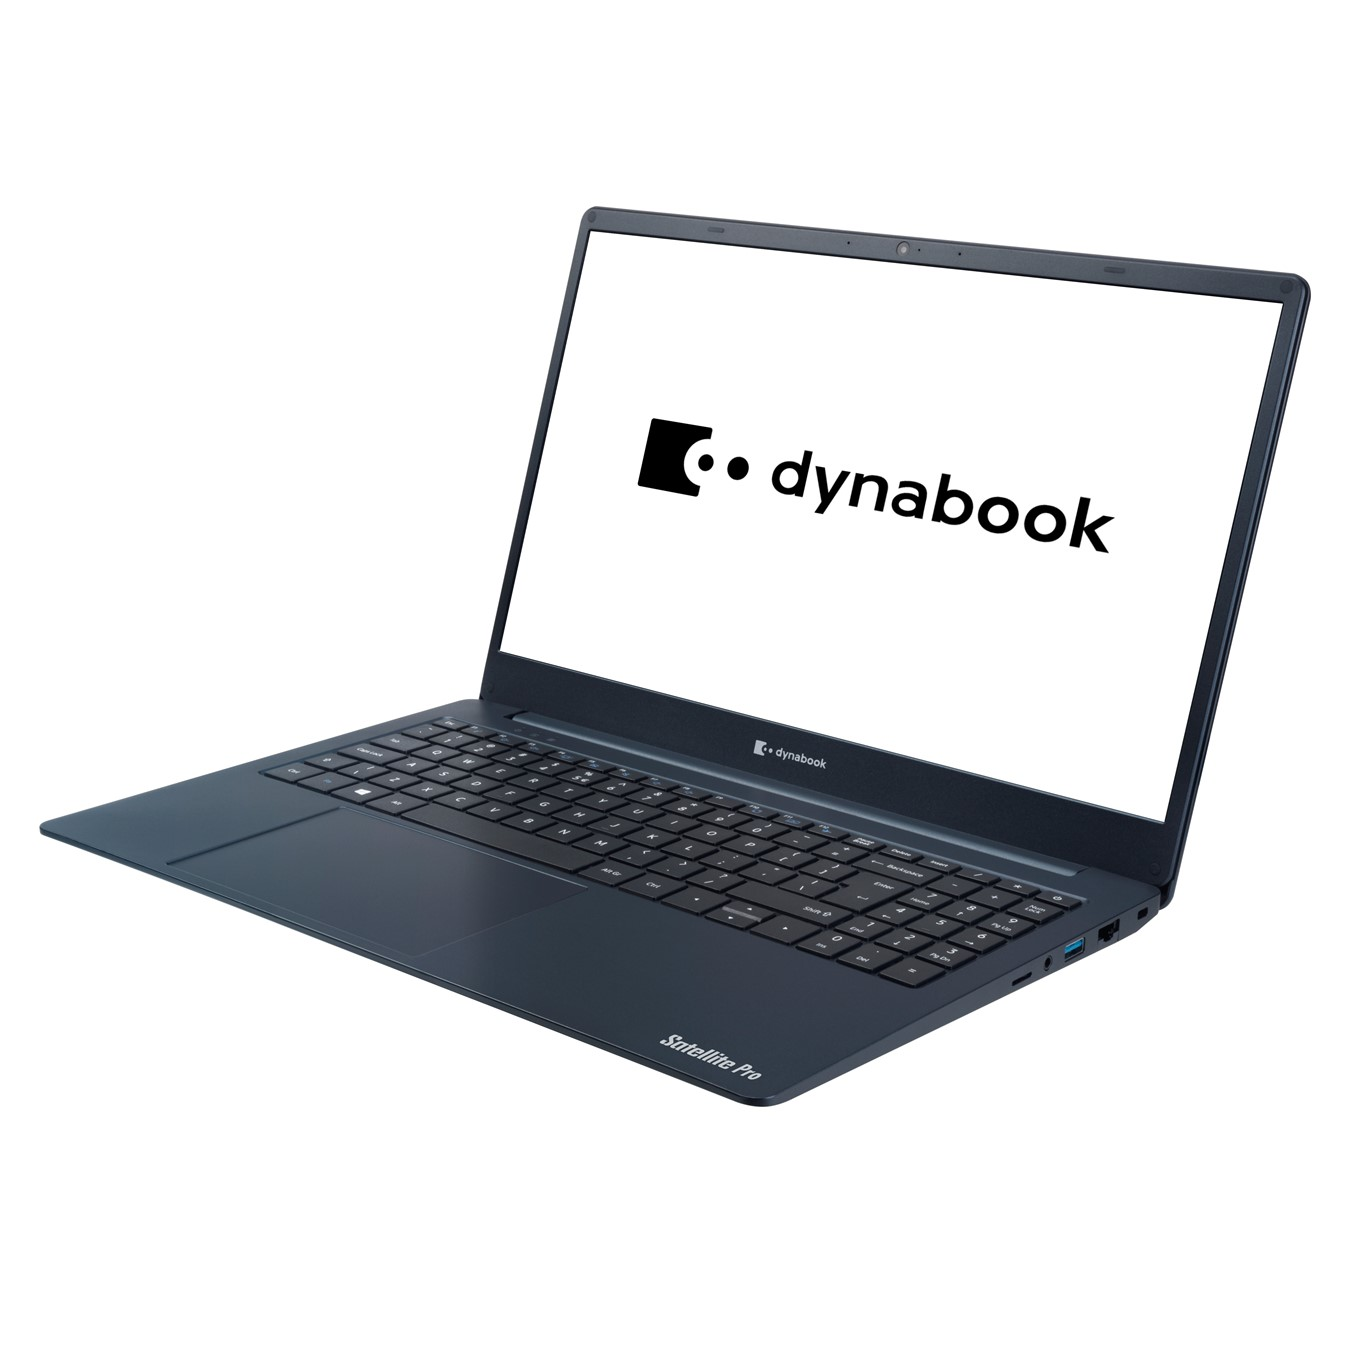 "PORTATIL DYNABOOK SATELLITE PRO I3-7020U 15.6"" 8GB / SSD256GB / WIFI / BT / FREEDOS"